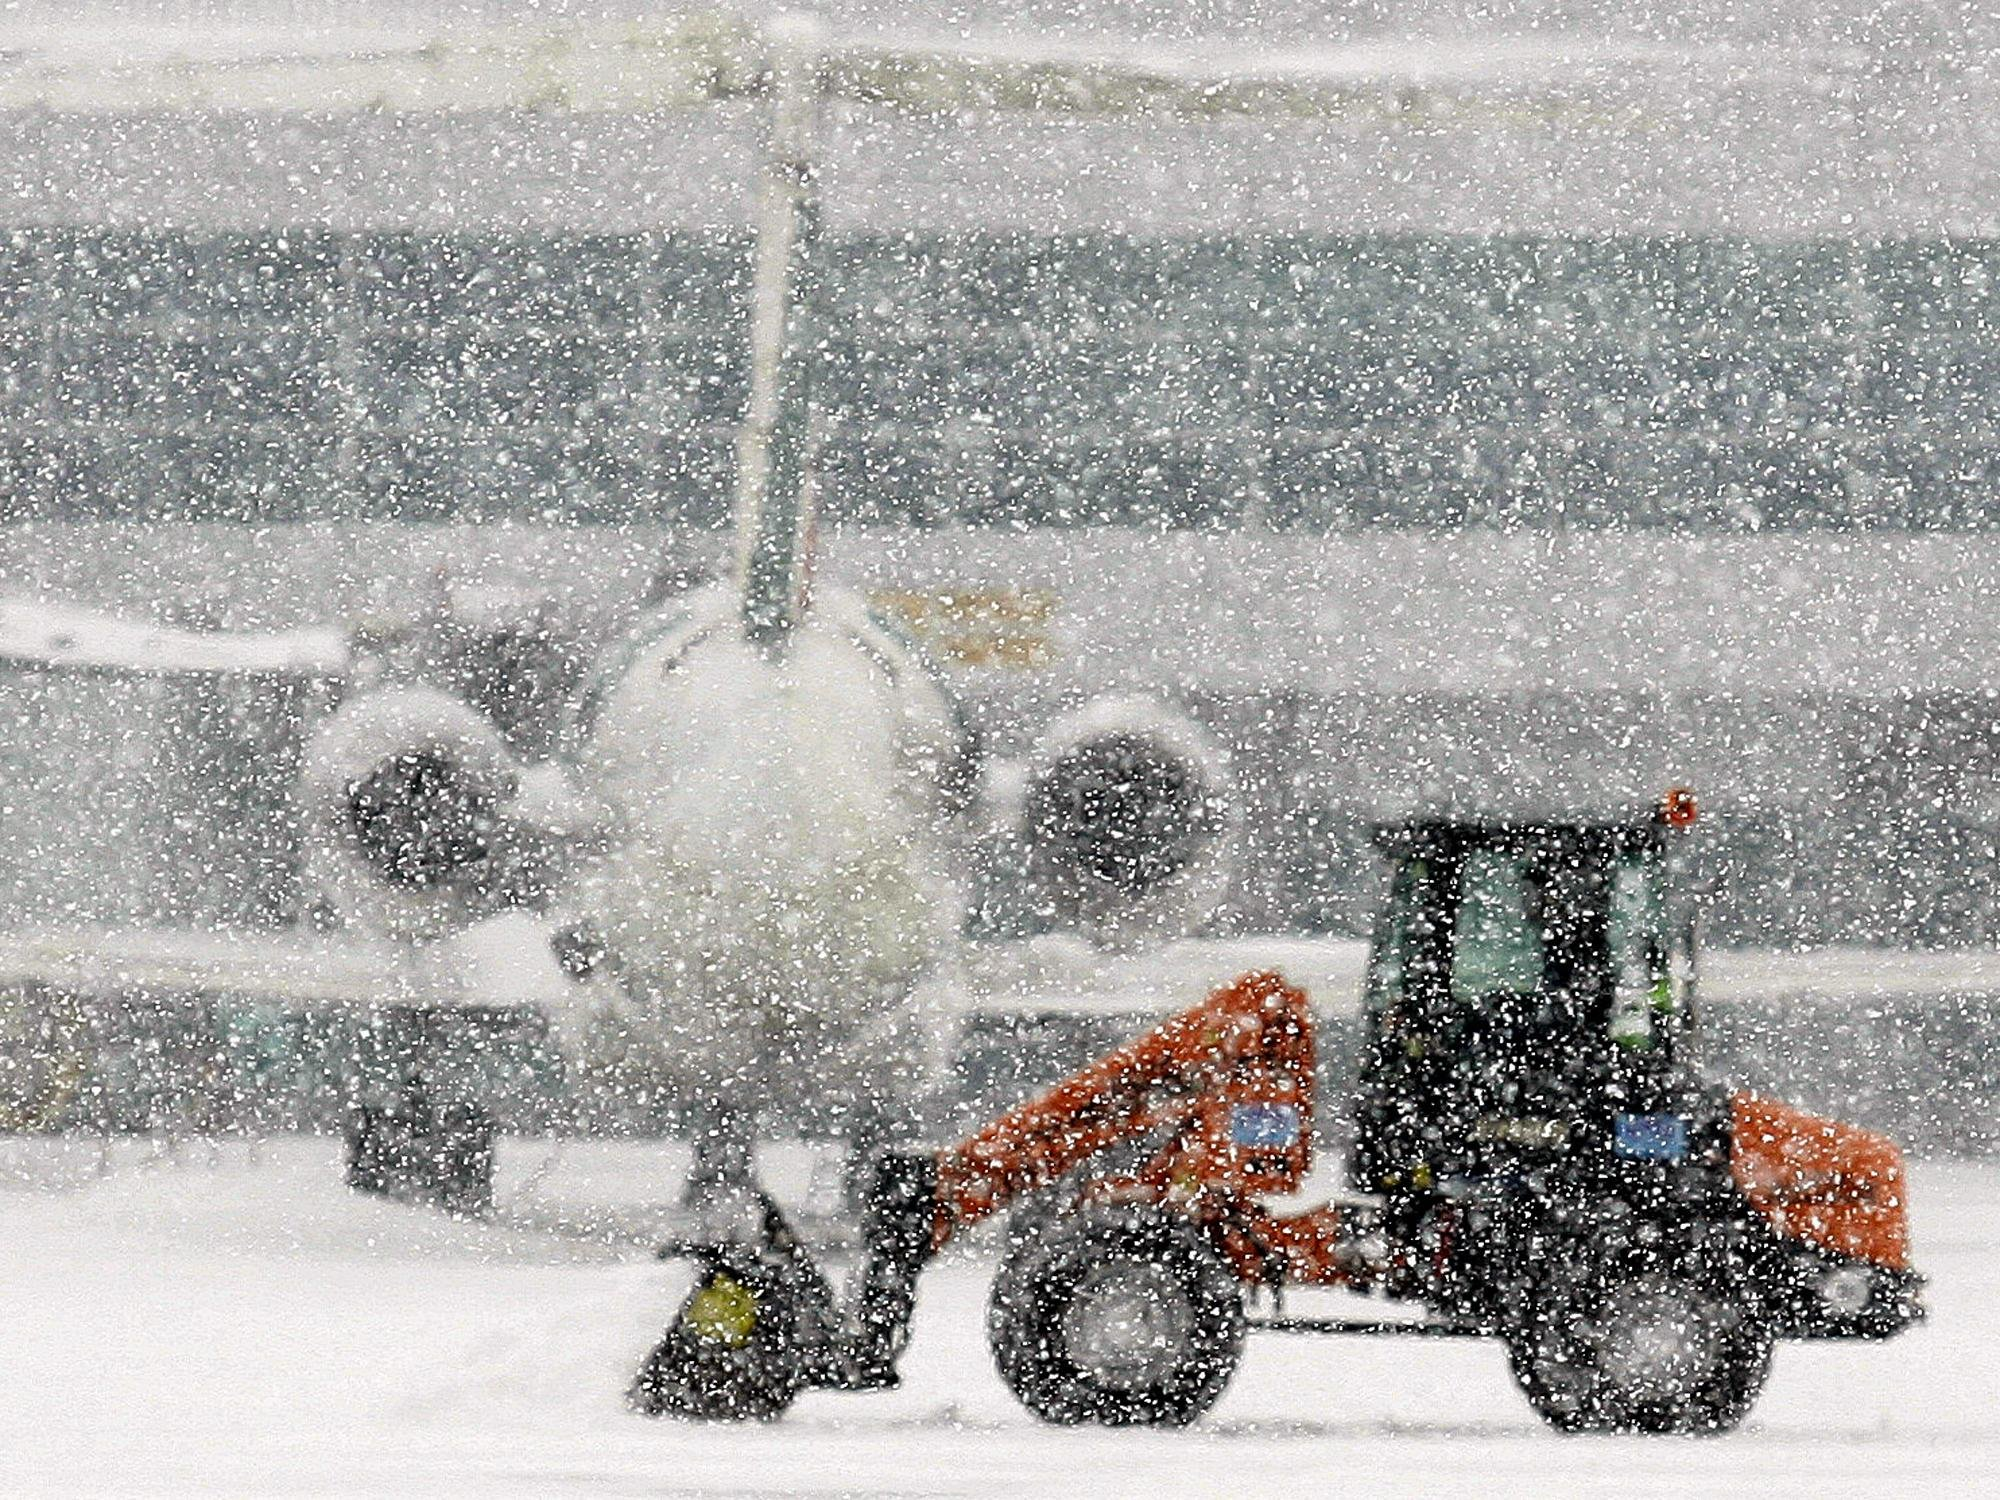 East Coast blizzard cancels dozens of flights in sunny Los Angeles